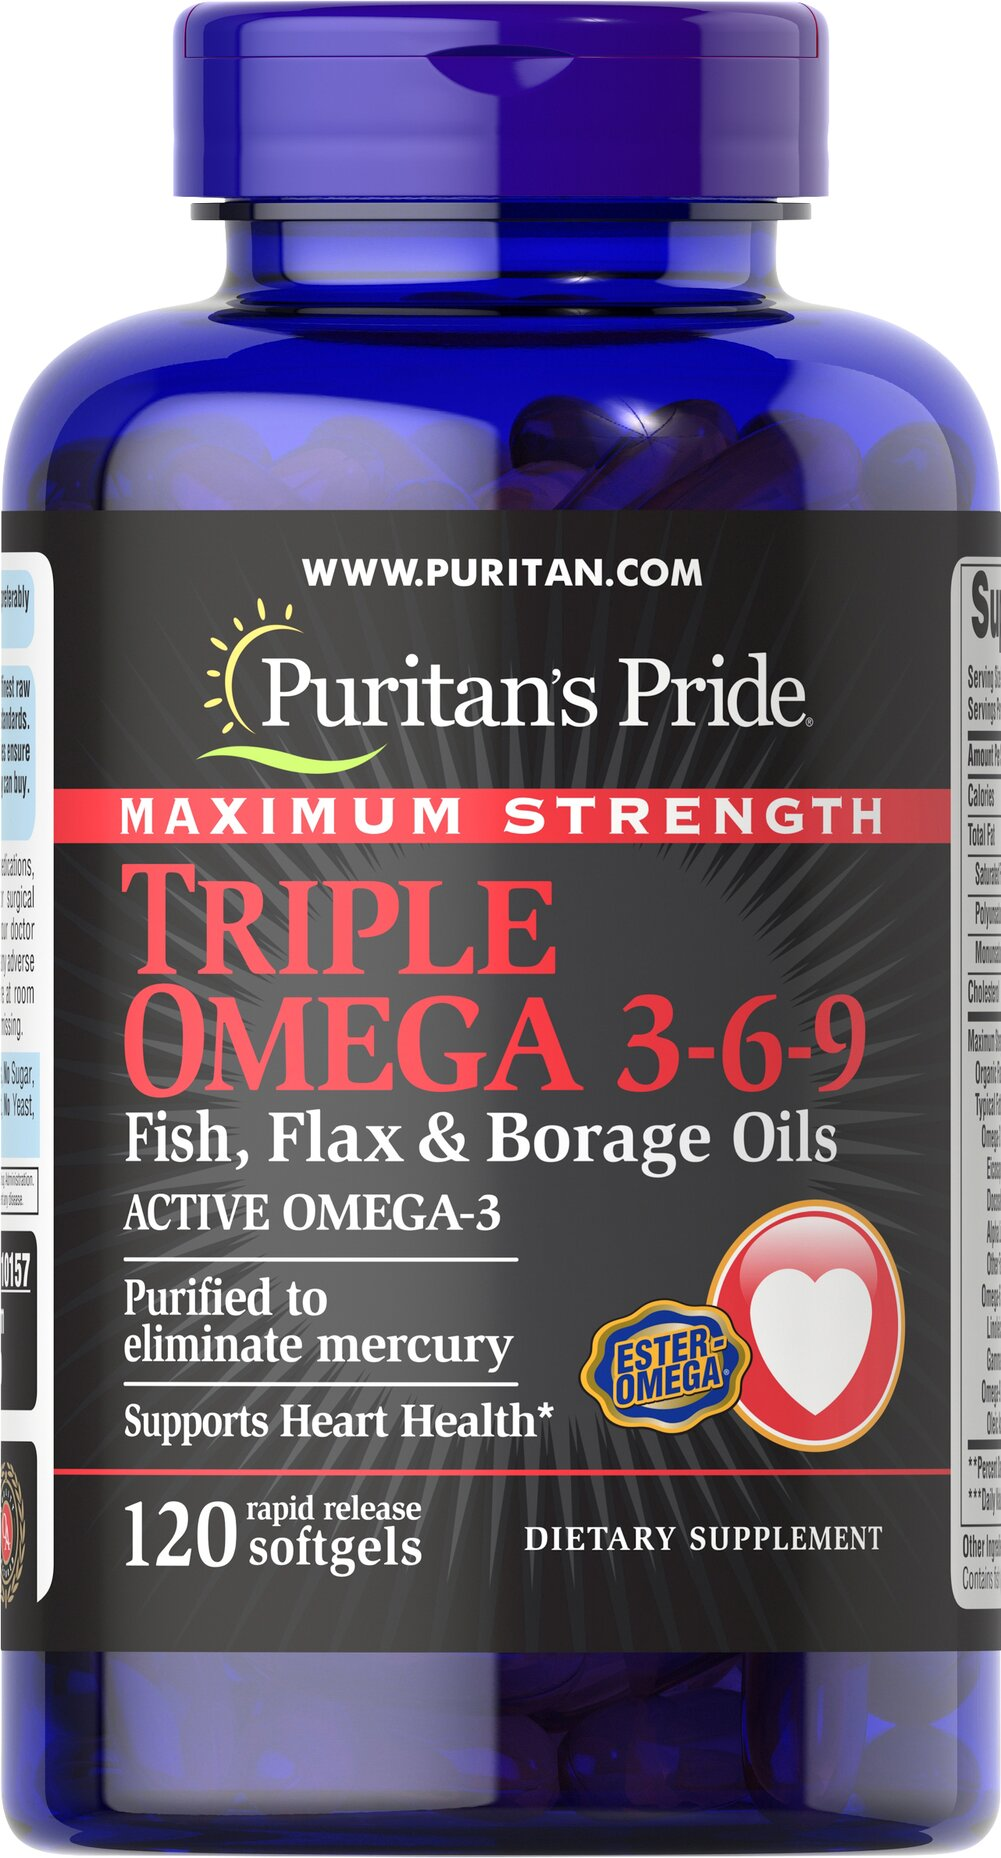 Maximum Strength Triple Omega 3-6-9 Fish, Flax & Borage Oils Thumbnail Alternate Bottle View